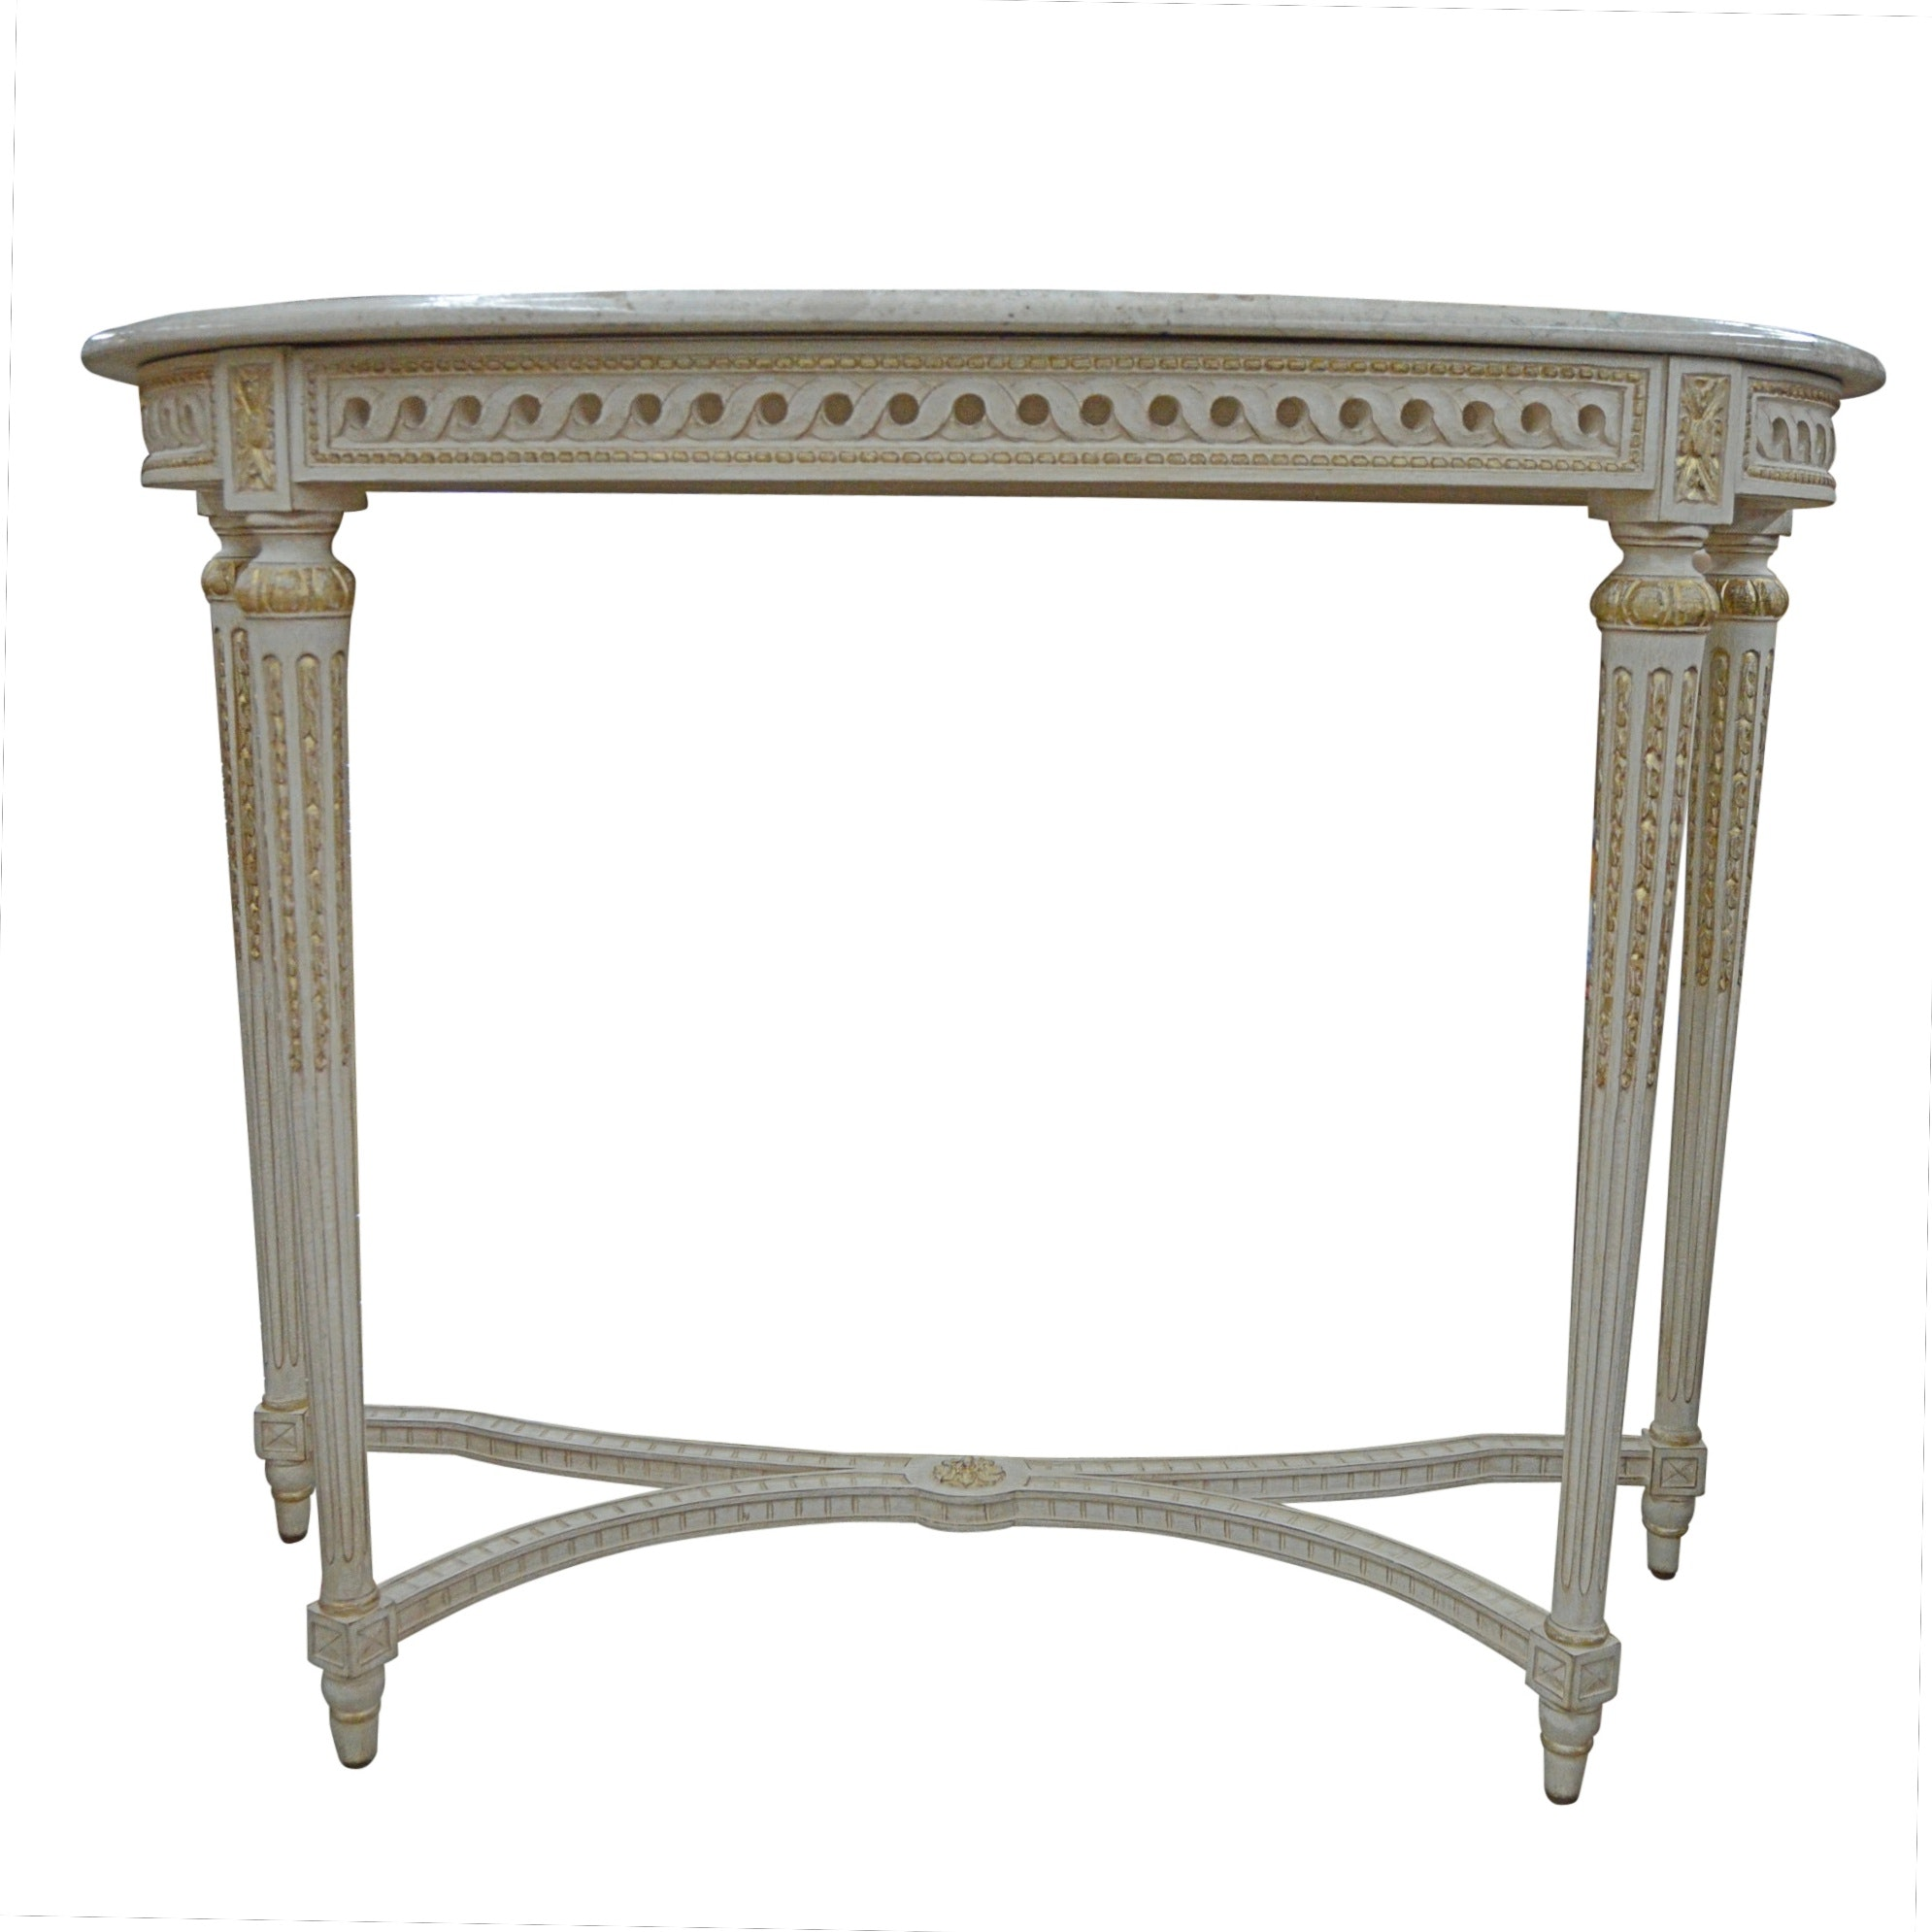 Neoclassical Style Demilune Console Table with Marble Top from Louis J. Soloman